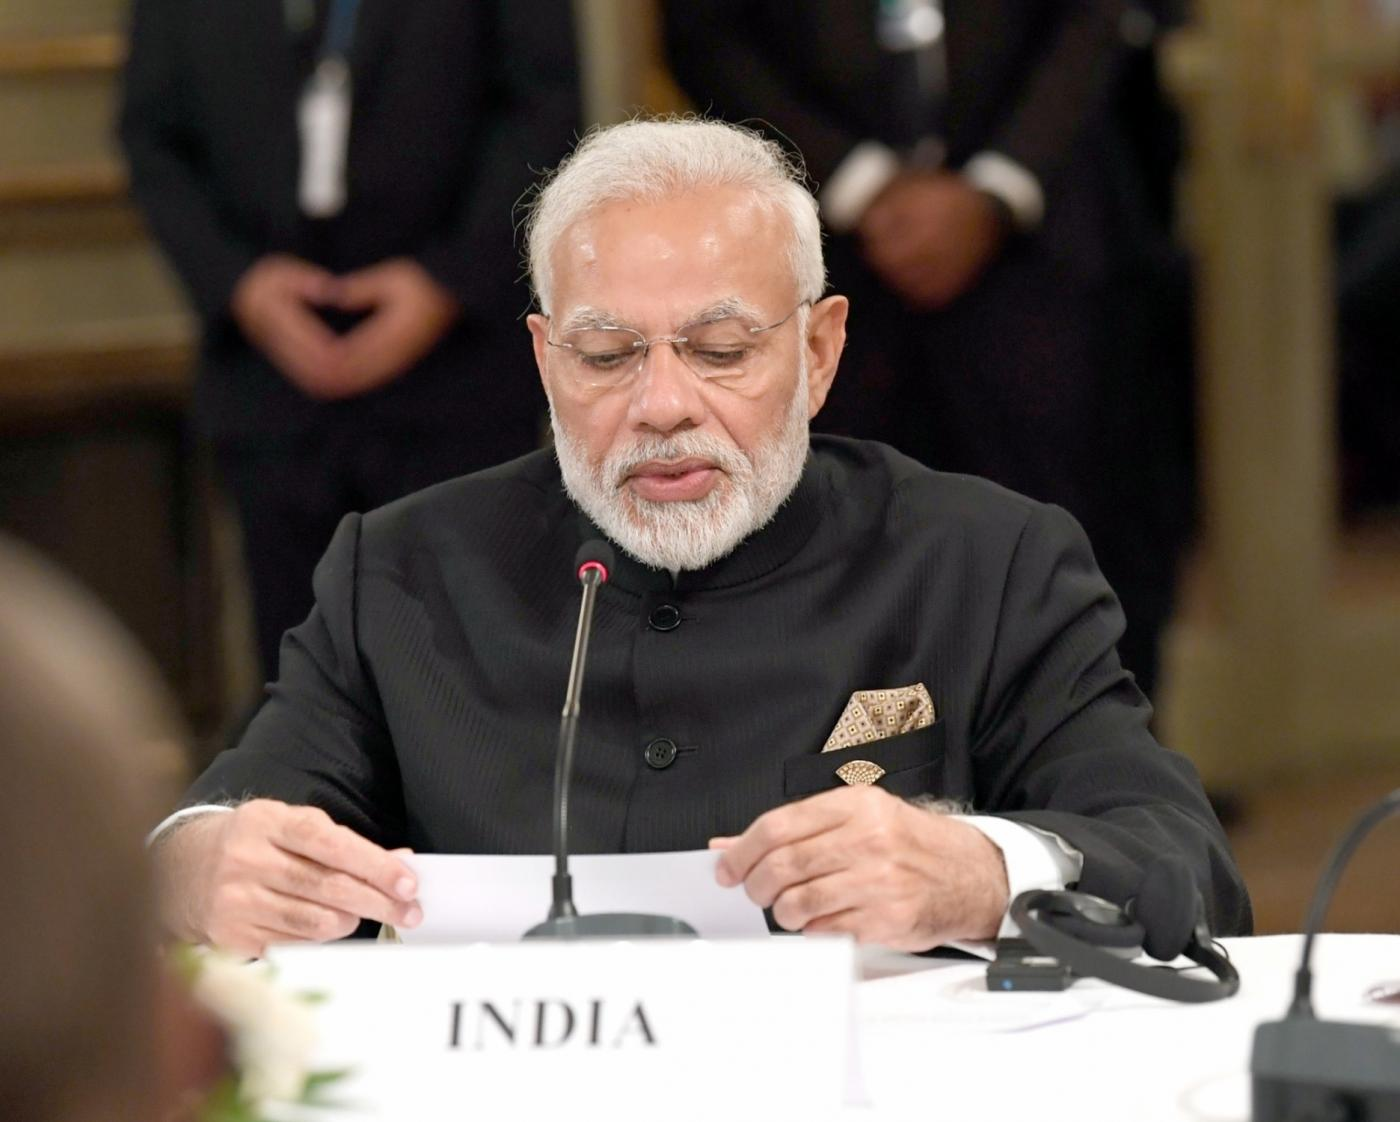 Buenos Aires: Prime Minister Narendra Modi at the RIC (Russia, India, China) Informal Summit, in Buenos Aires, Argentina on Nov 30, 2018. (Photo: IANS/PIB) by .